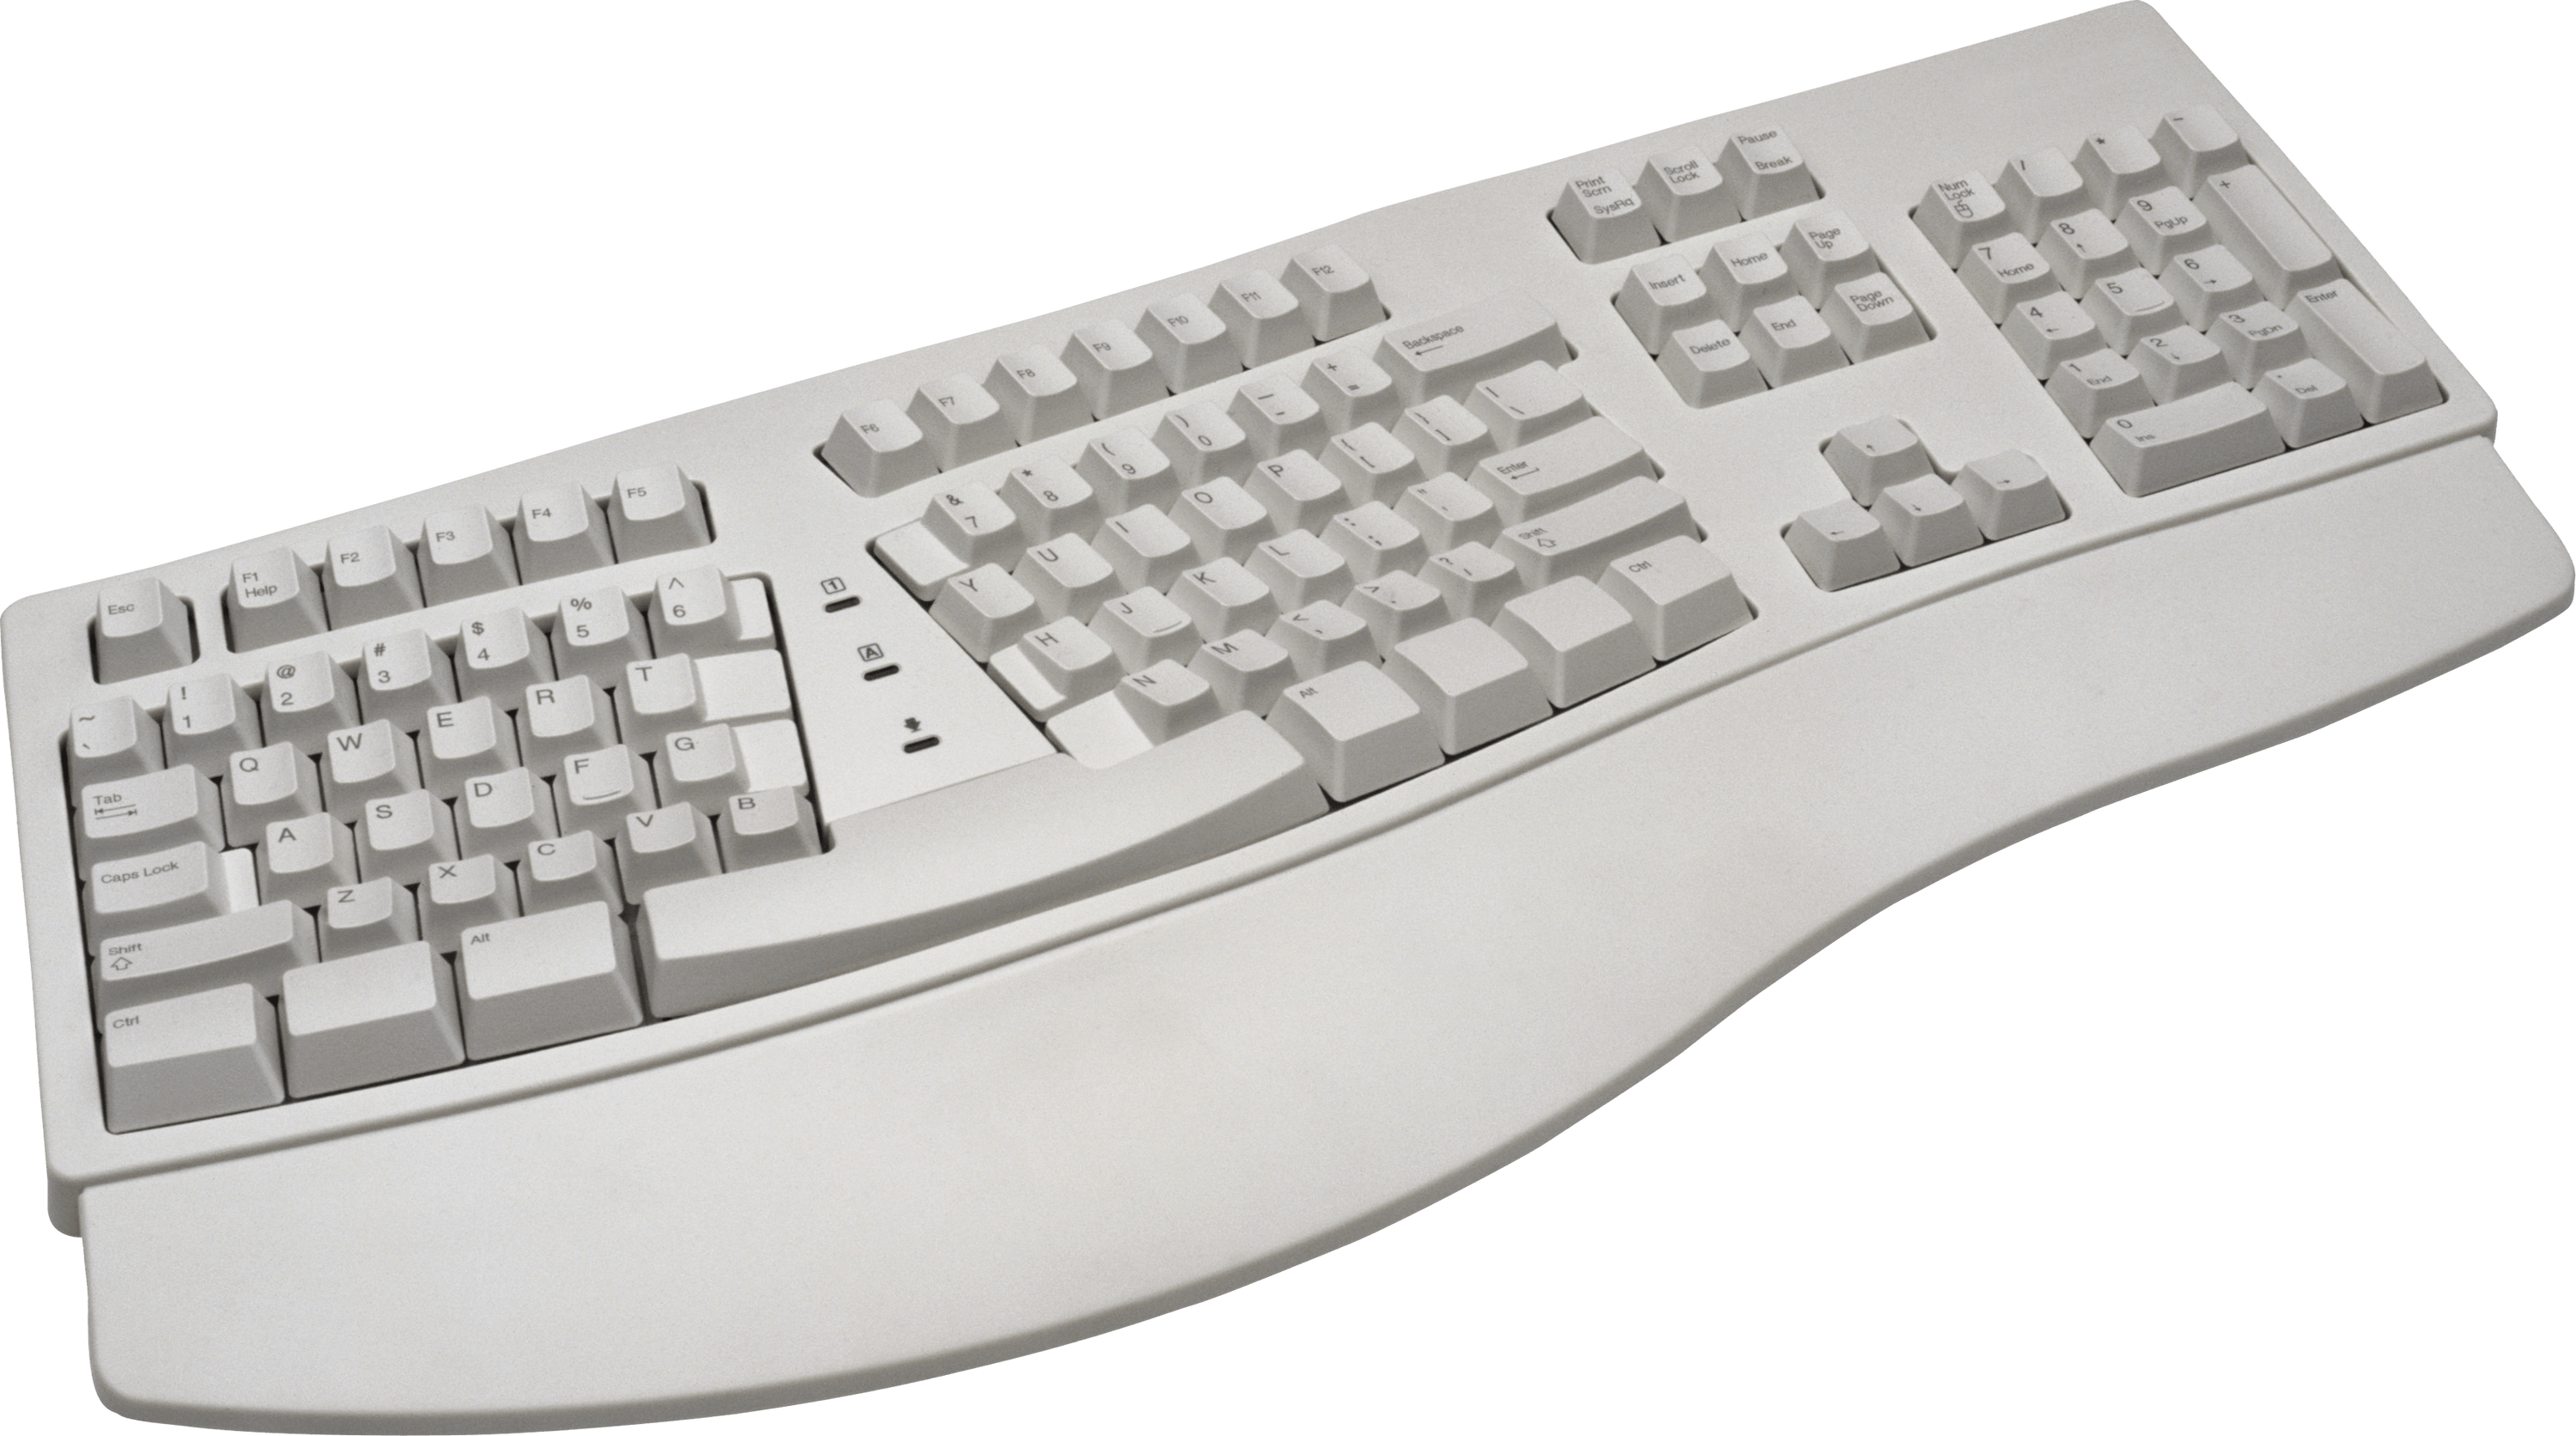 Ergonomic Keyboard Transparent Png Stickpng